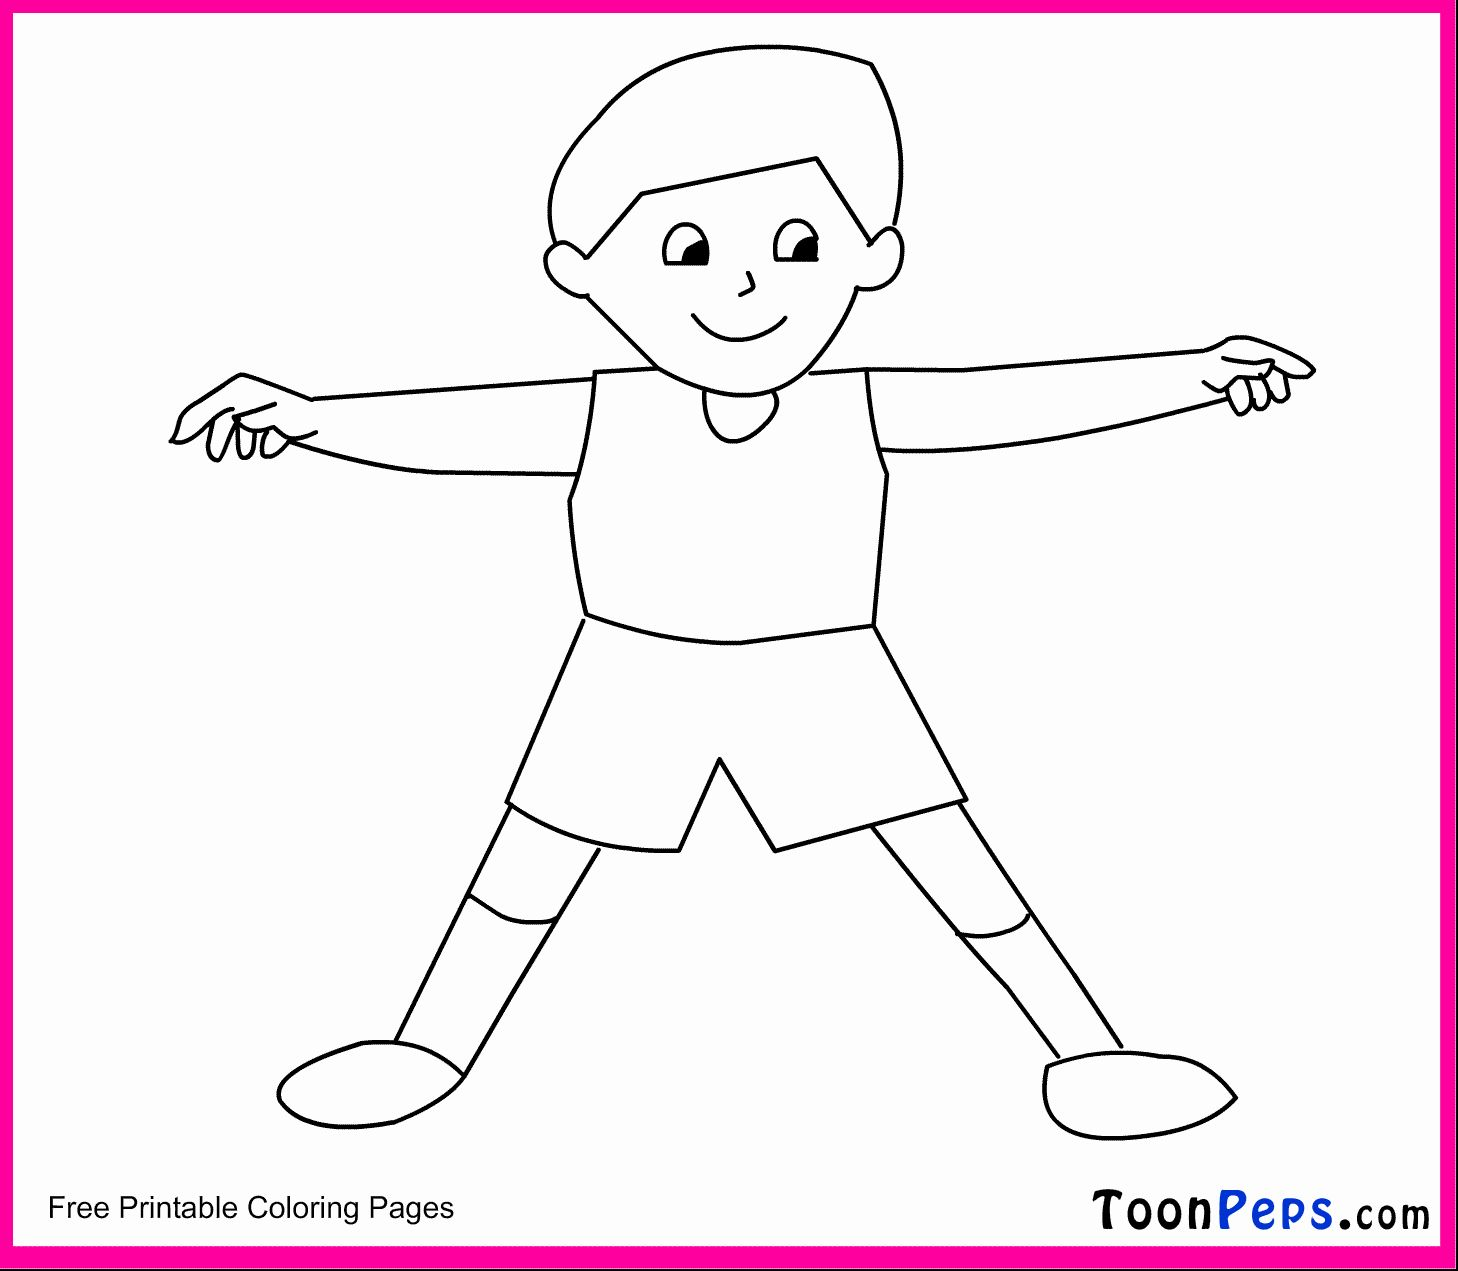 Human Body Coloring Book Best Of Free Printable Human Body